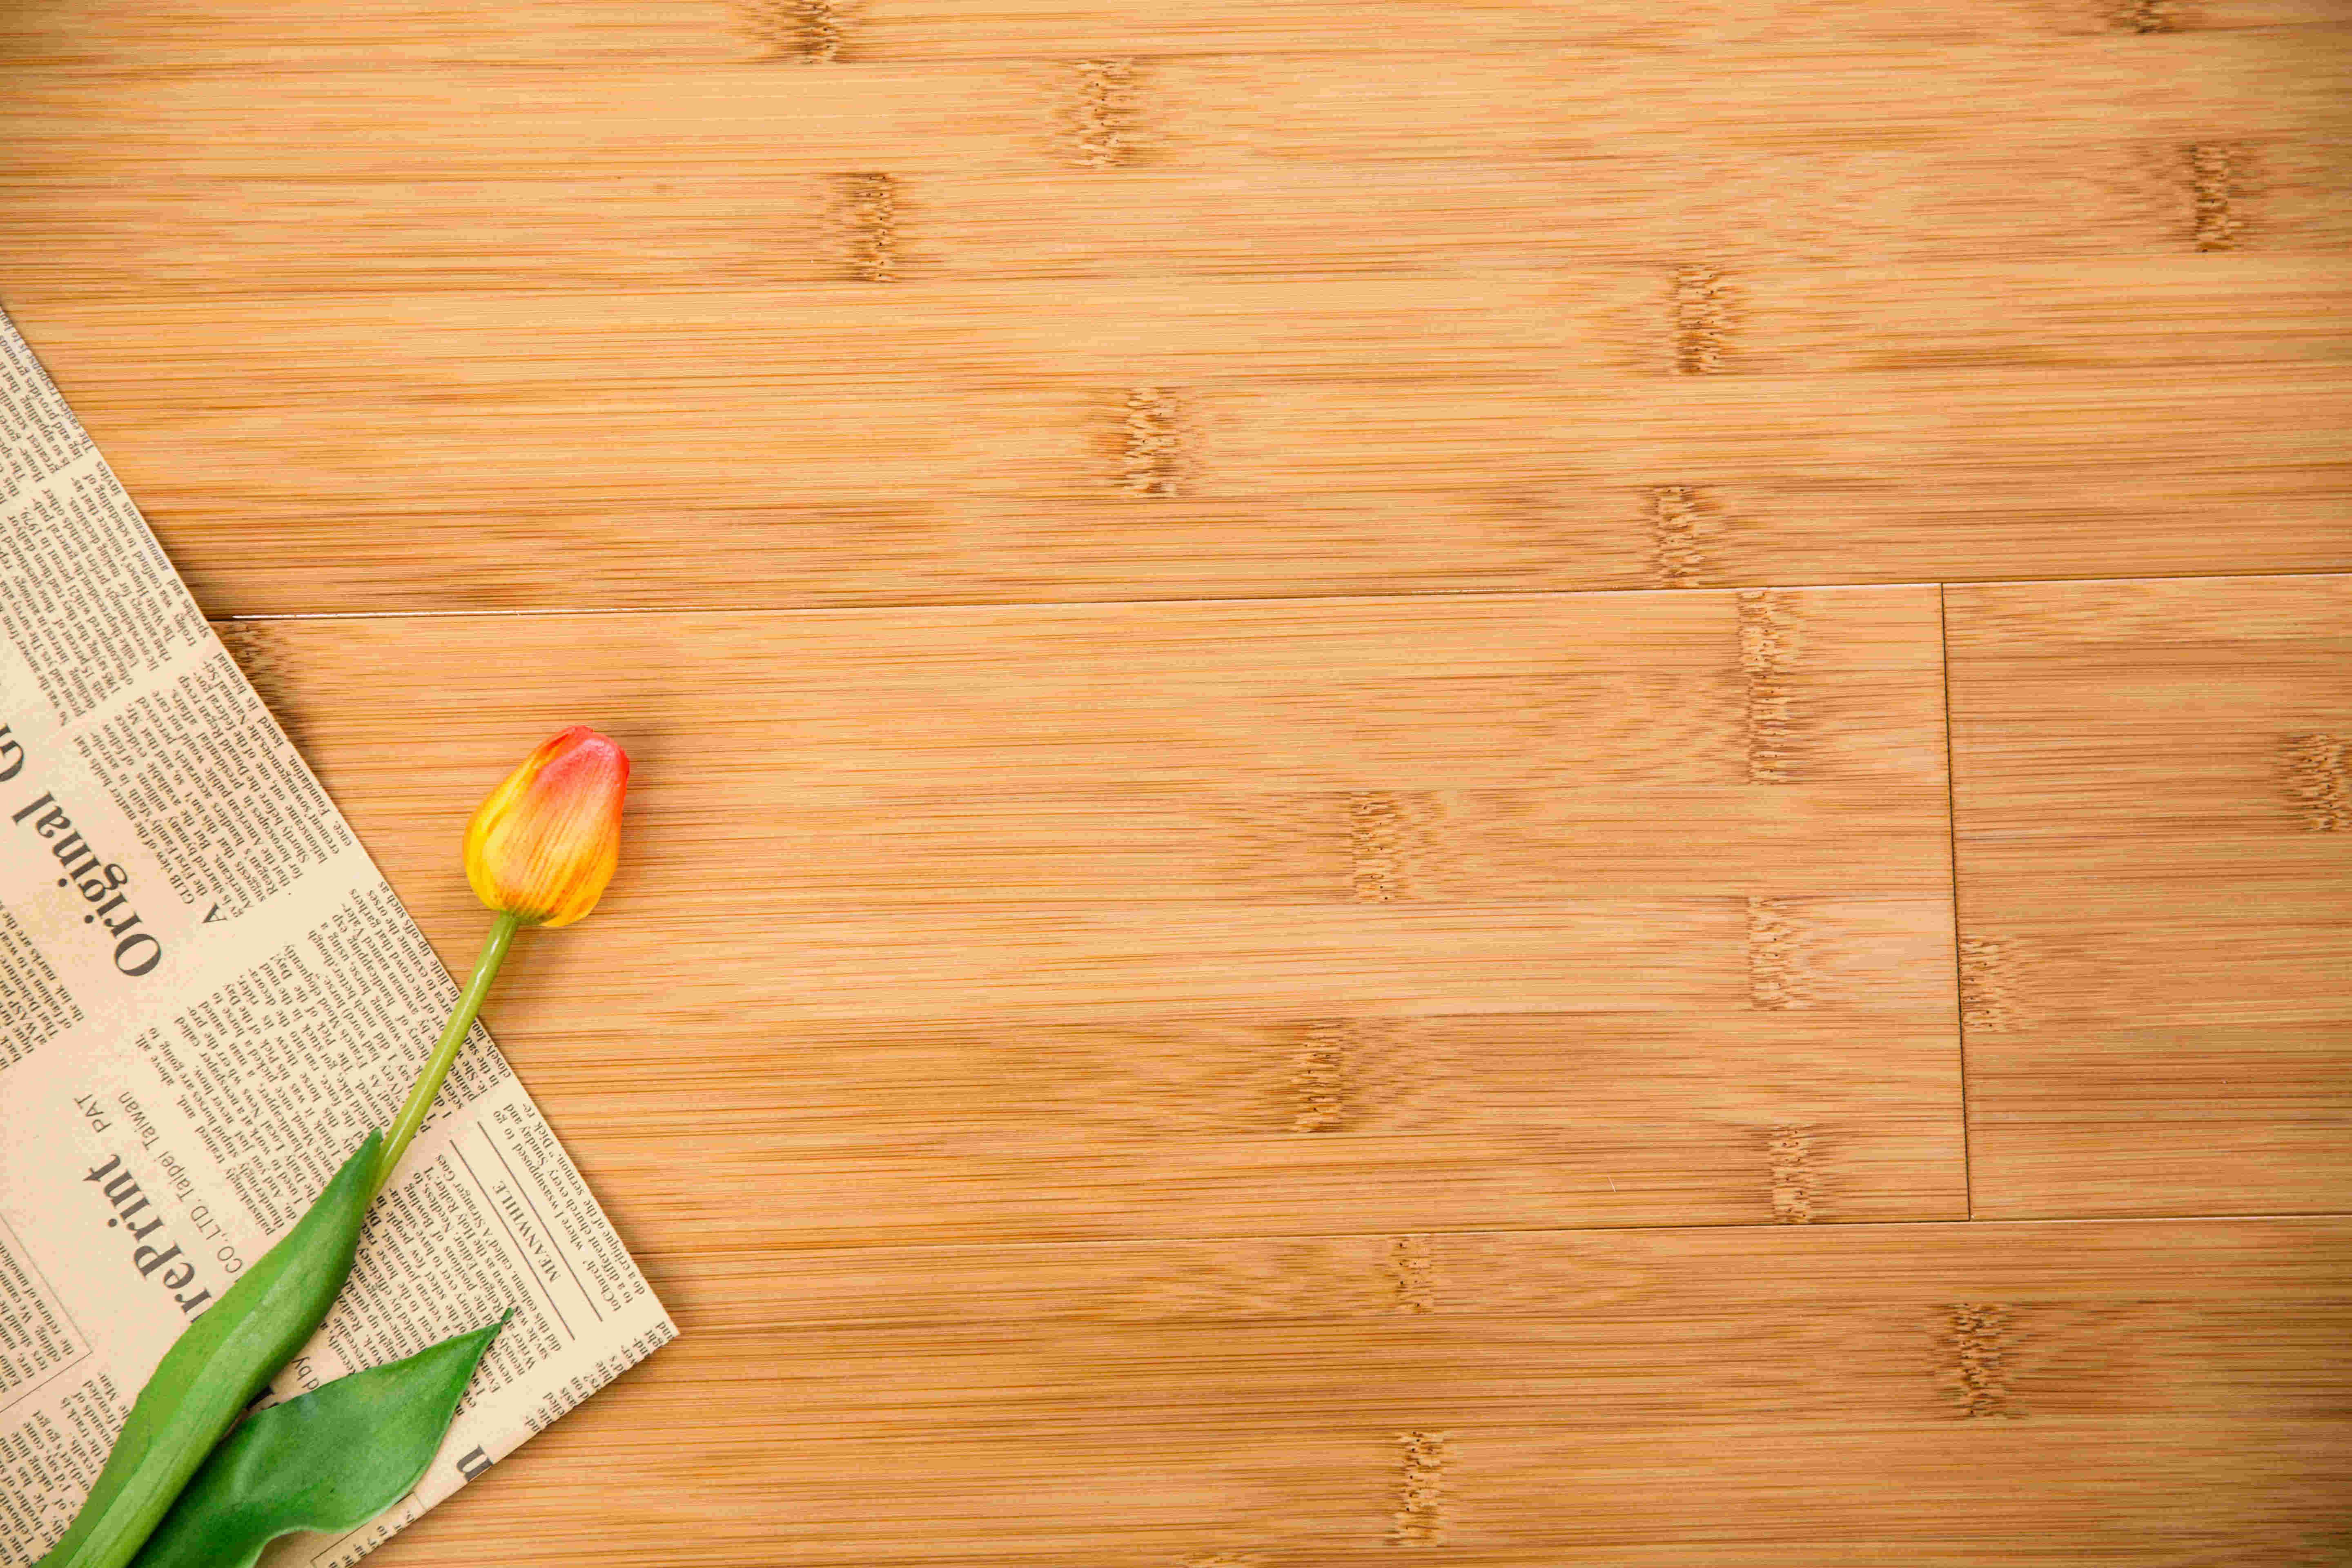 Natural and Plain Pressed Bamboo Flooring